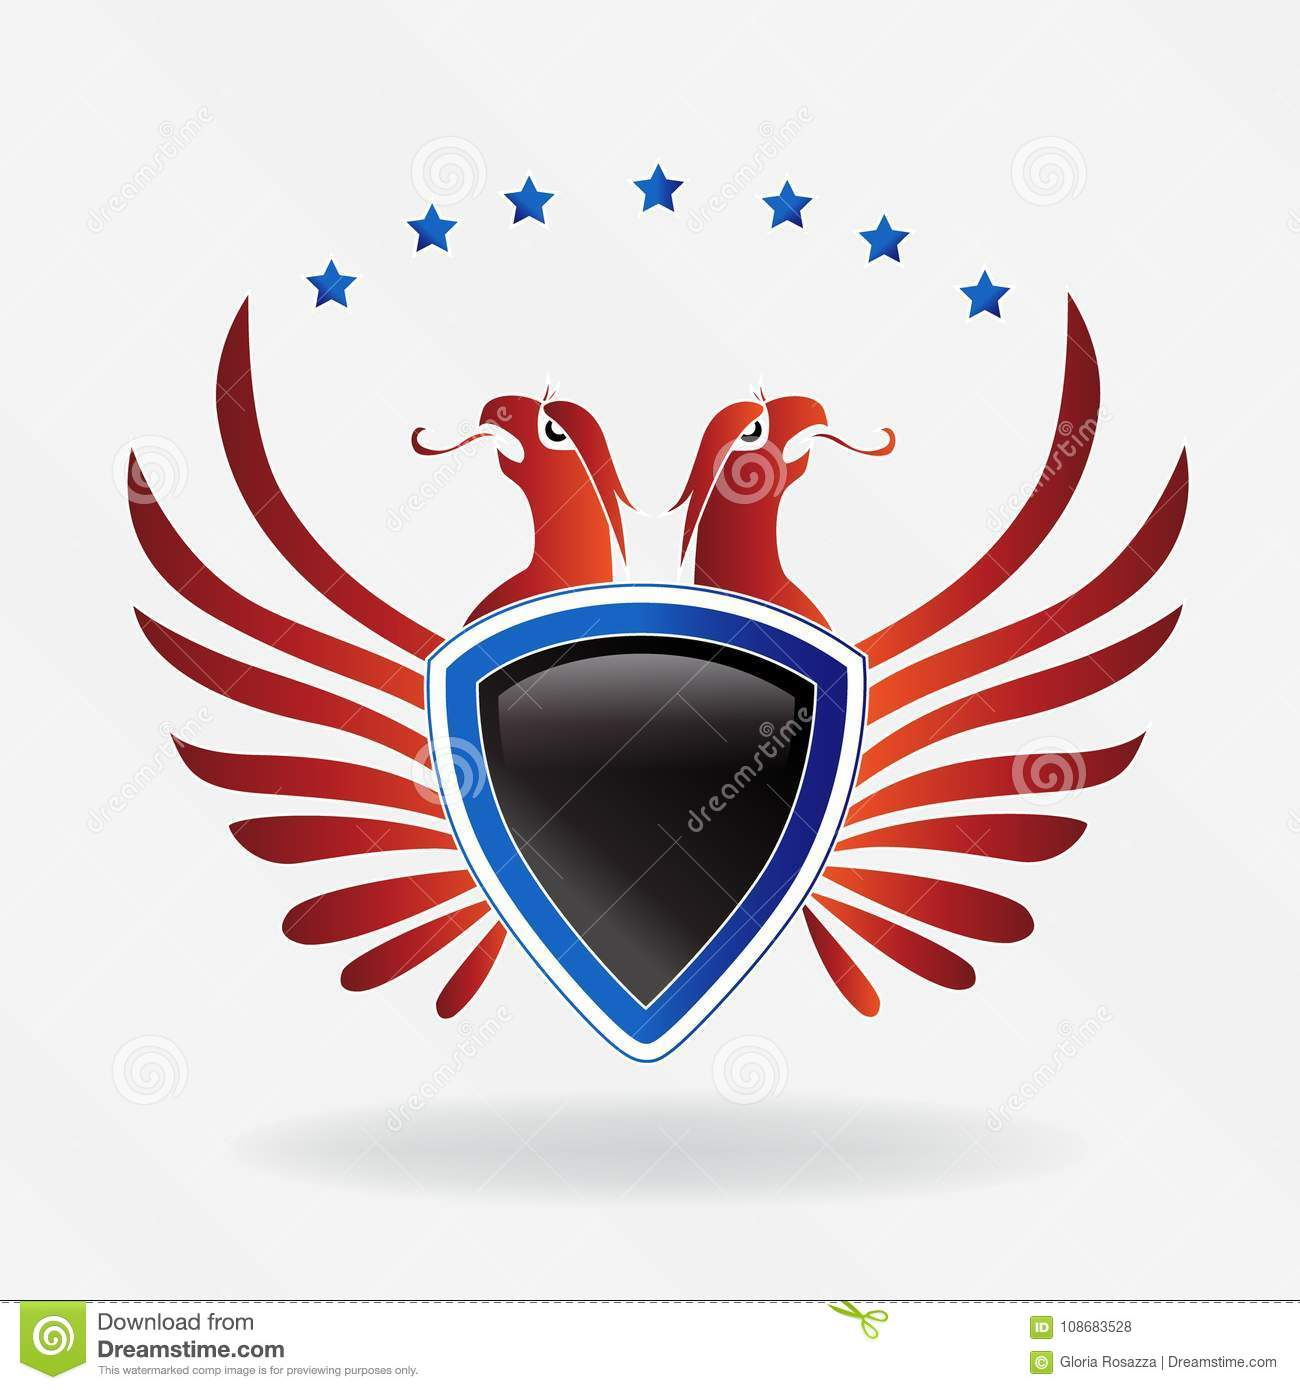 Usa eagle shield symbol logo vector illustration stock vector usa eagle shield symbol logo vector illustration biocorpaavc Gallery